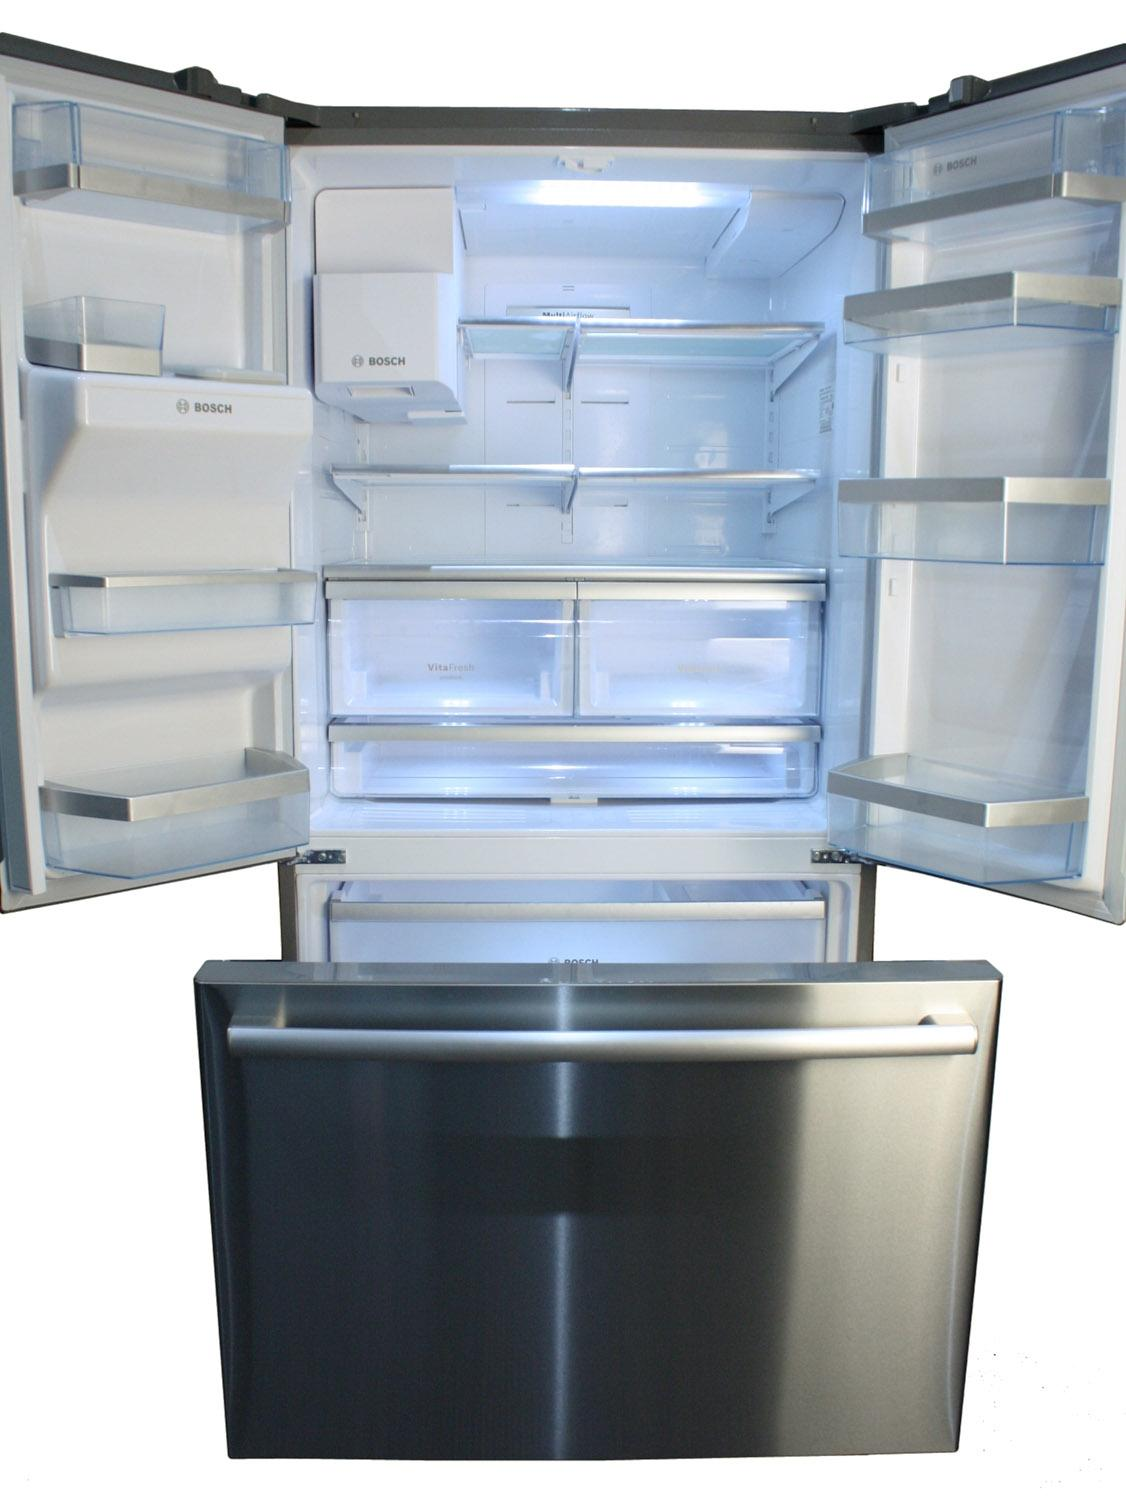 bosch refrigerator model b26ft70sns manual